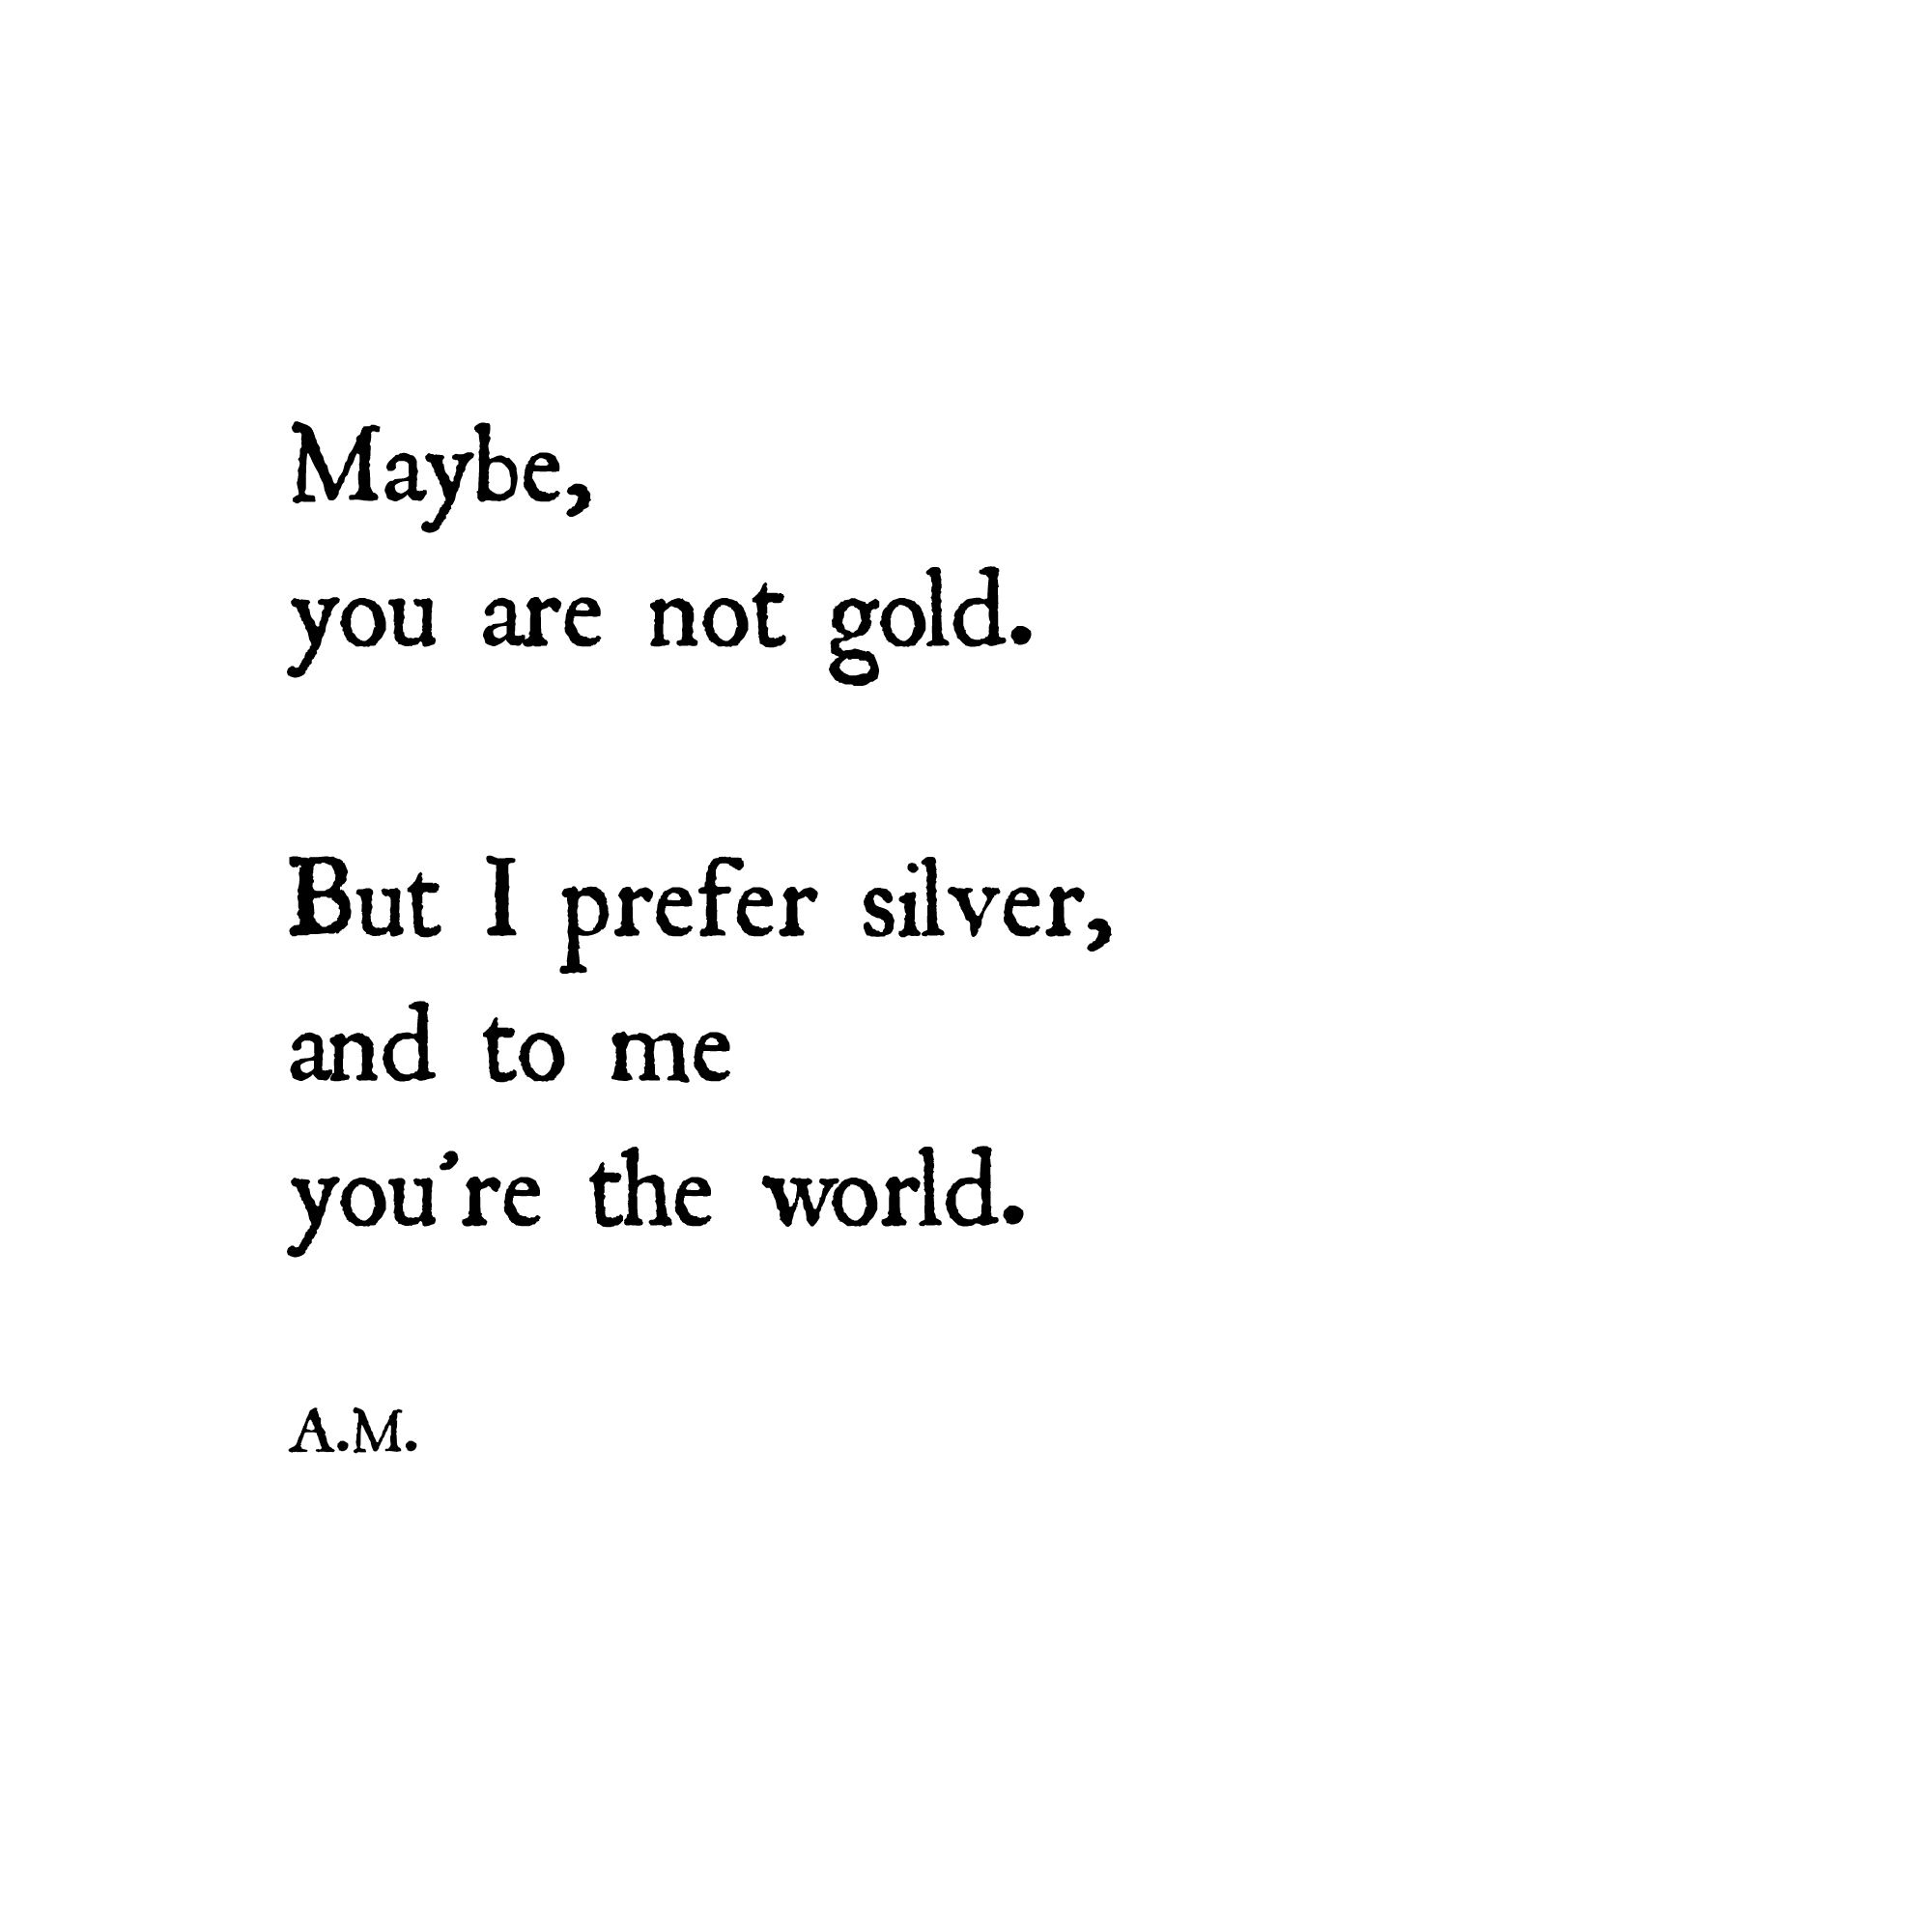 Maybe, you are not gold. But I prefer silver, and to me you're the world. A.M.